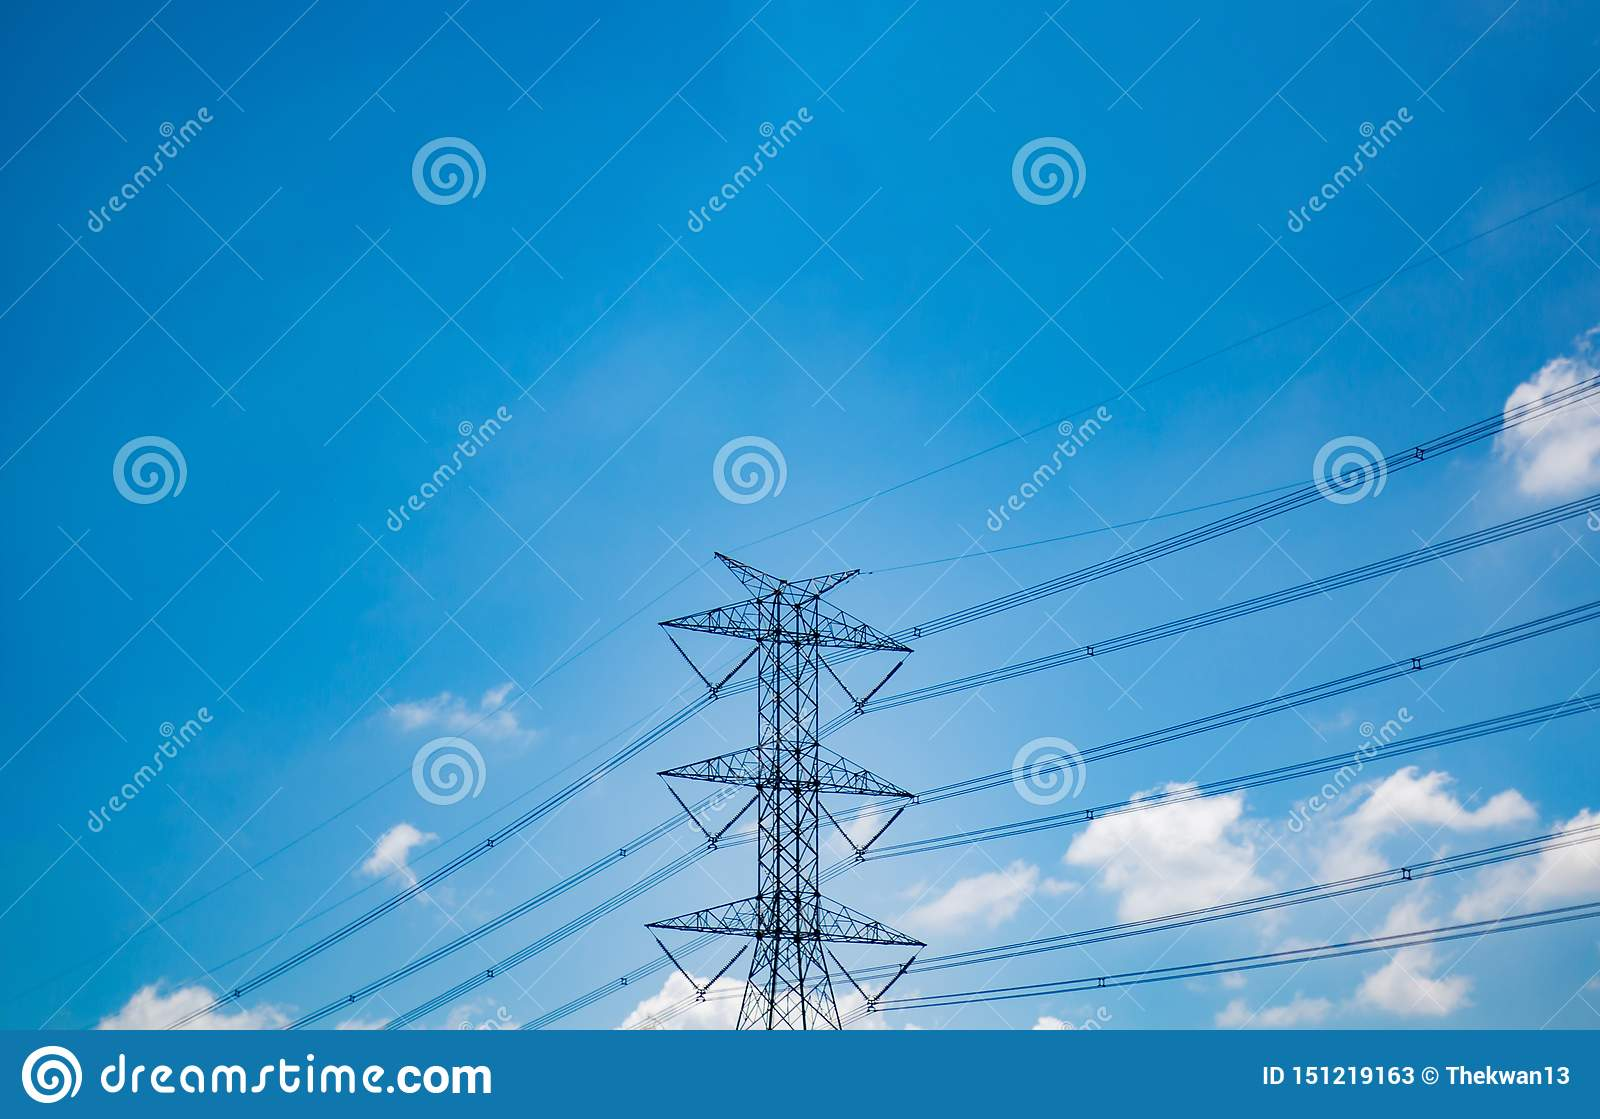 High voltage electric pole on sky background